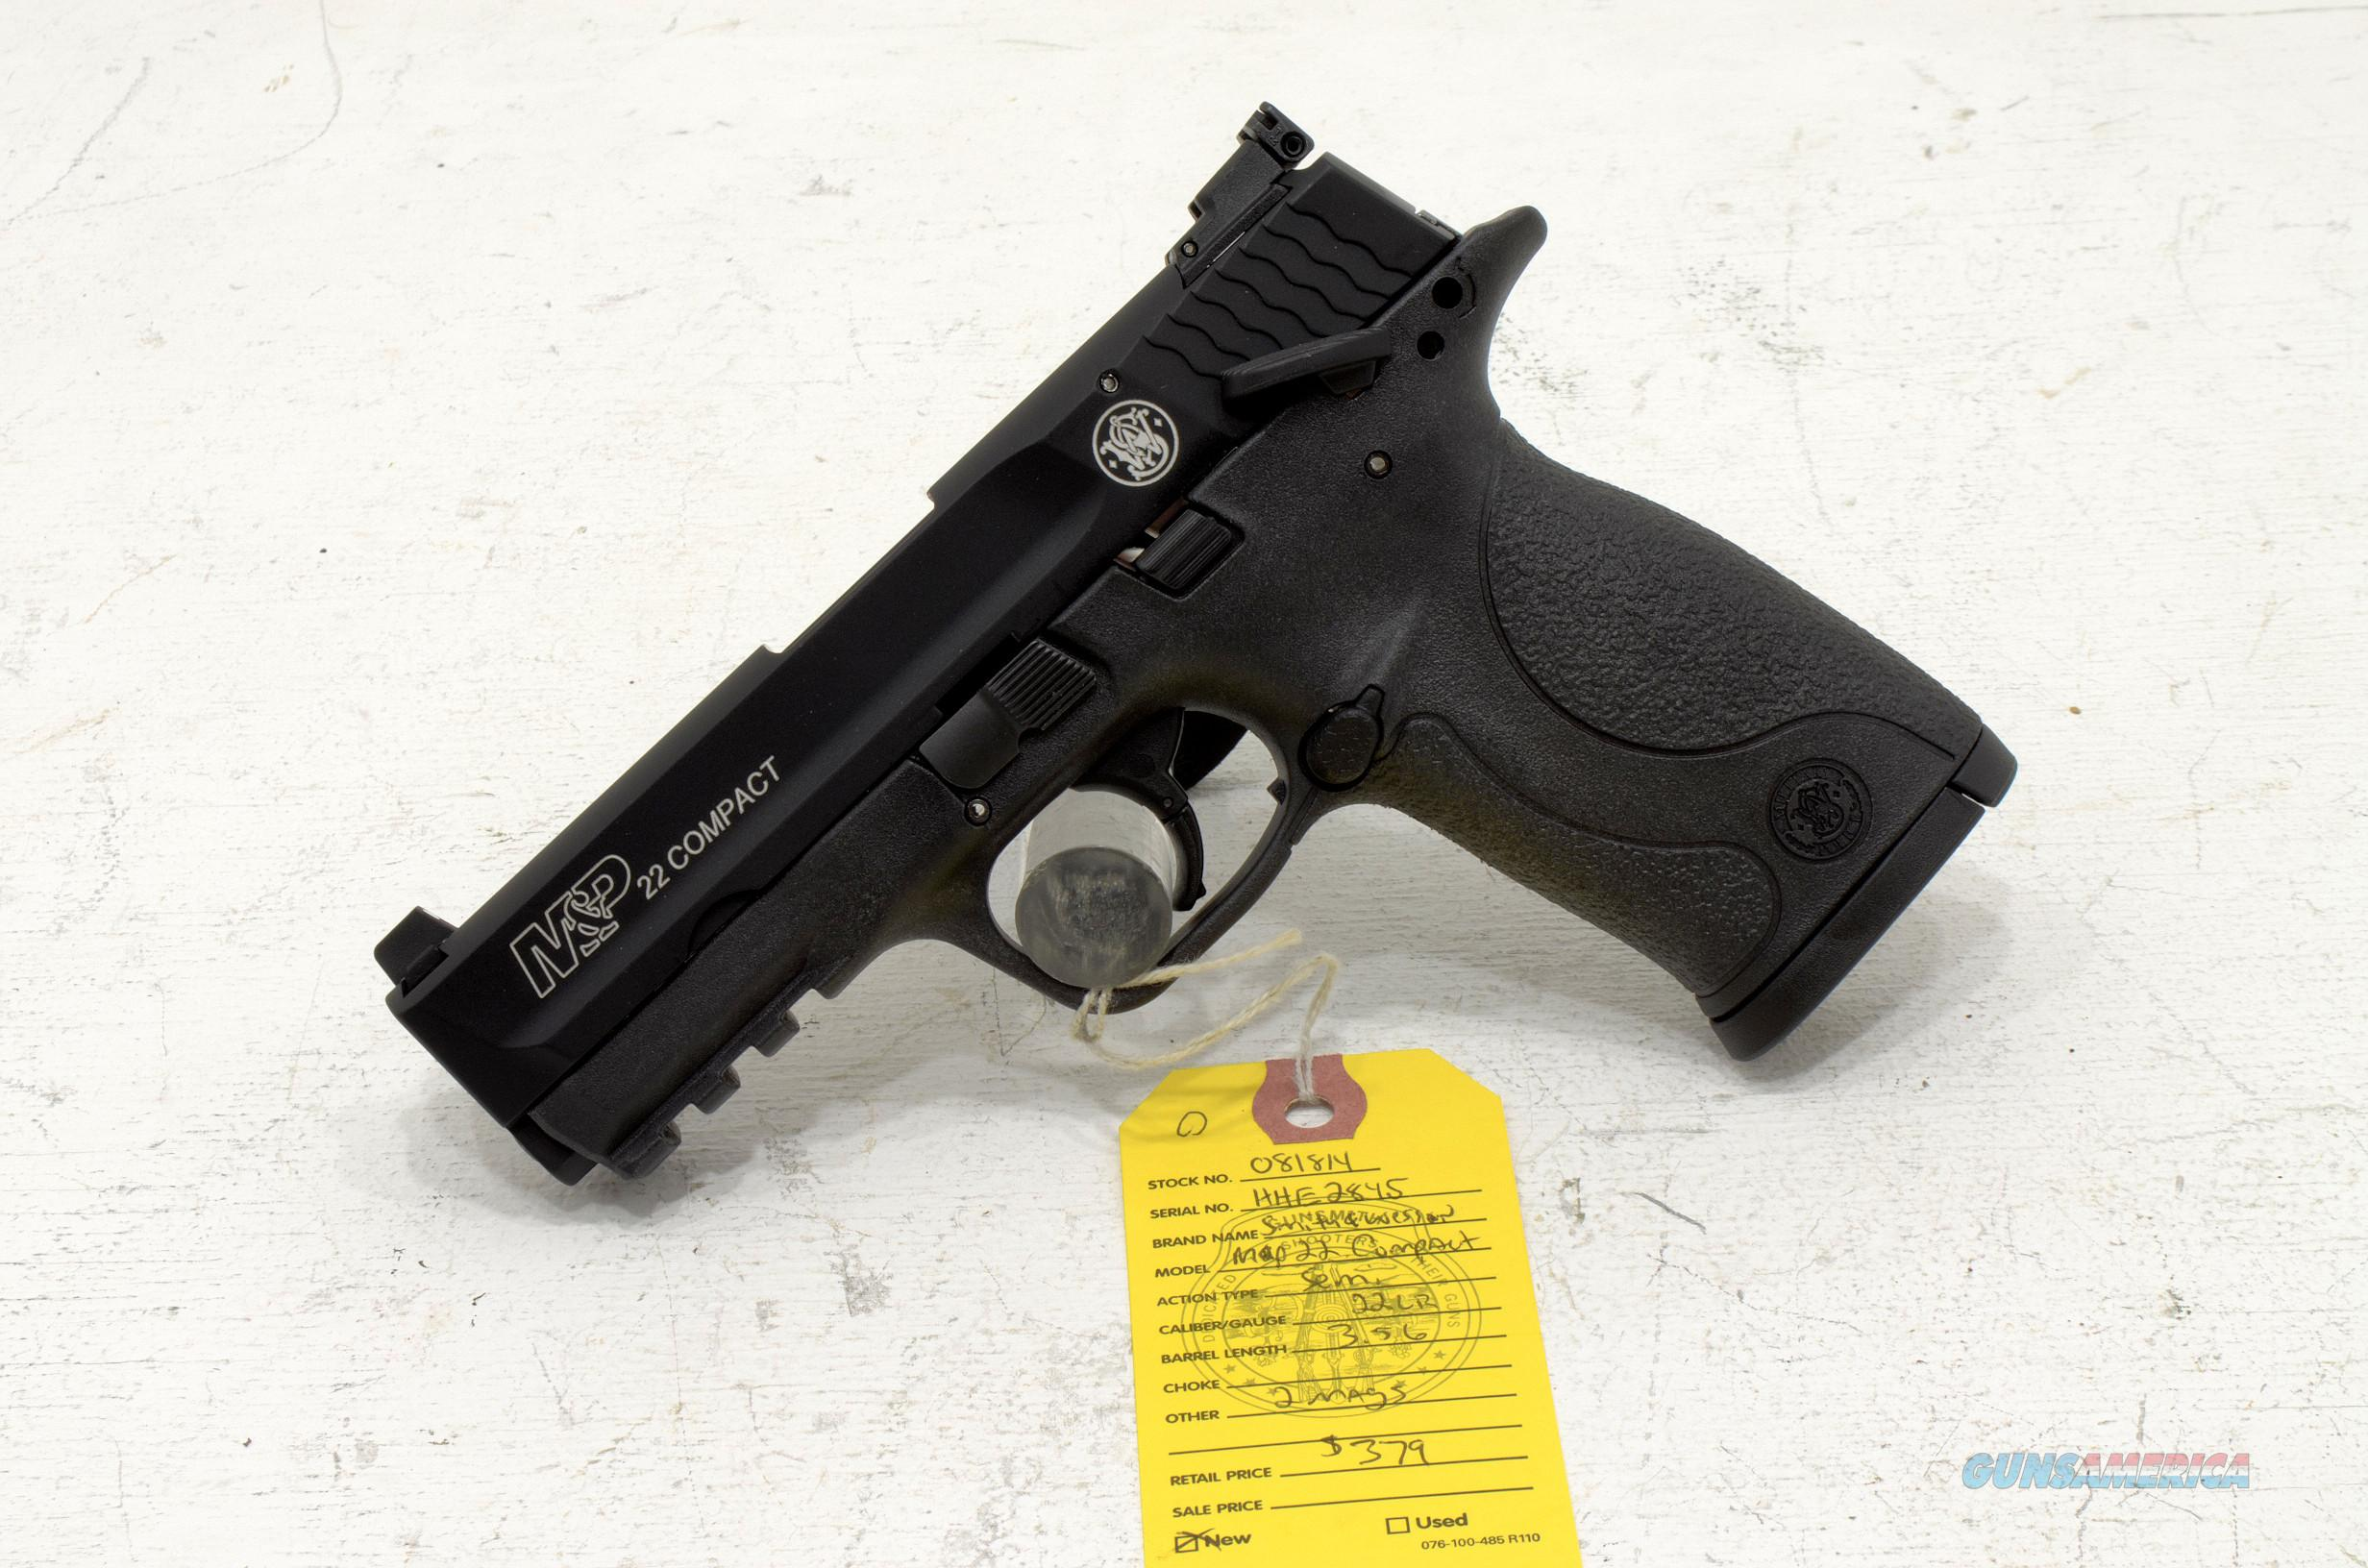 NEW SMITH & WESSON M&P22 Compact .22lr  Guns > Pistols > Smith & Wesson Pistols - Autos > .22 Autos